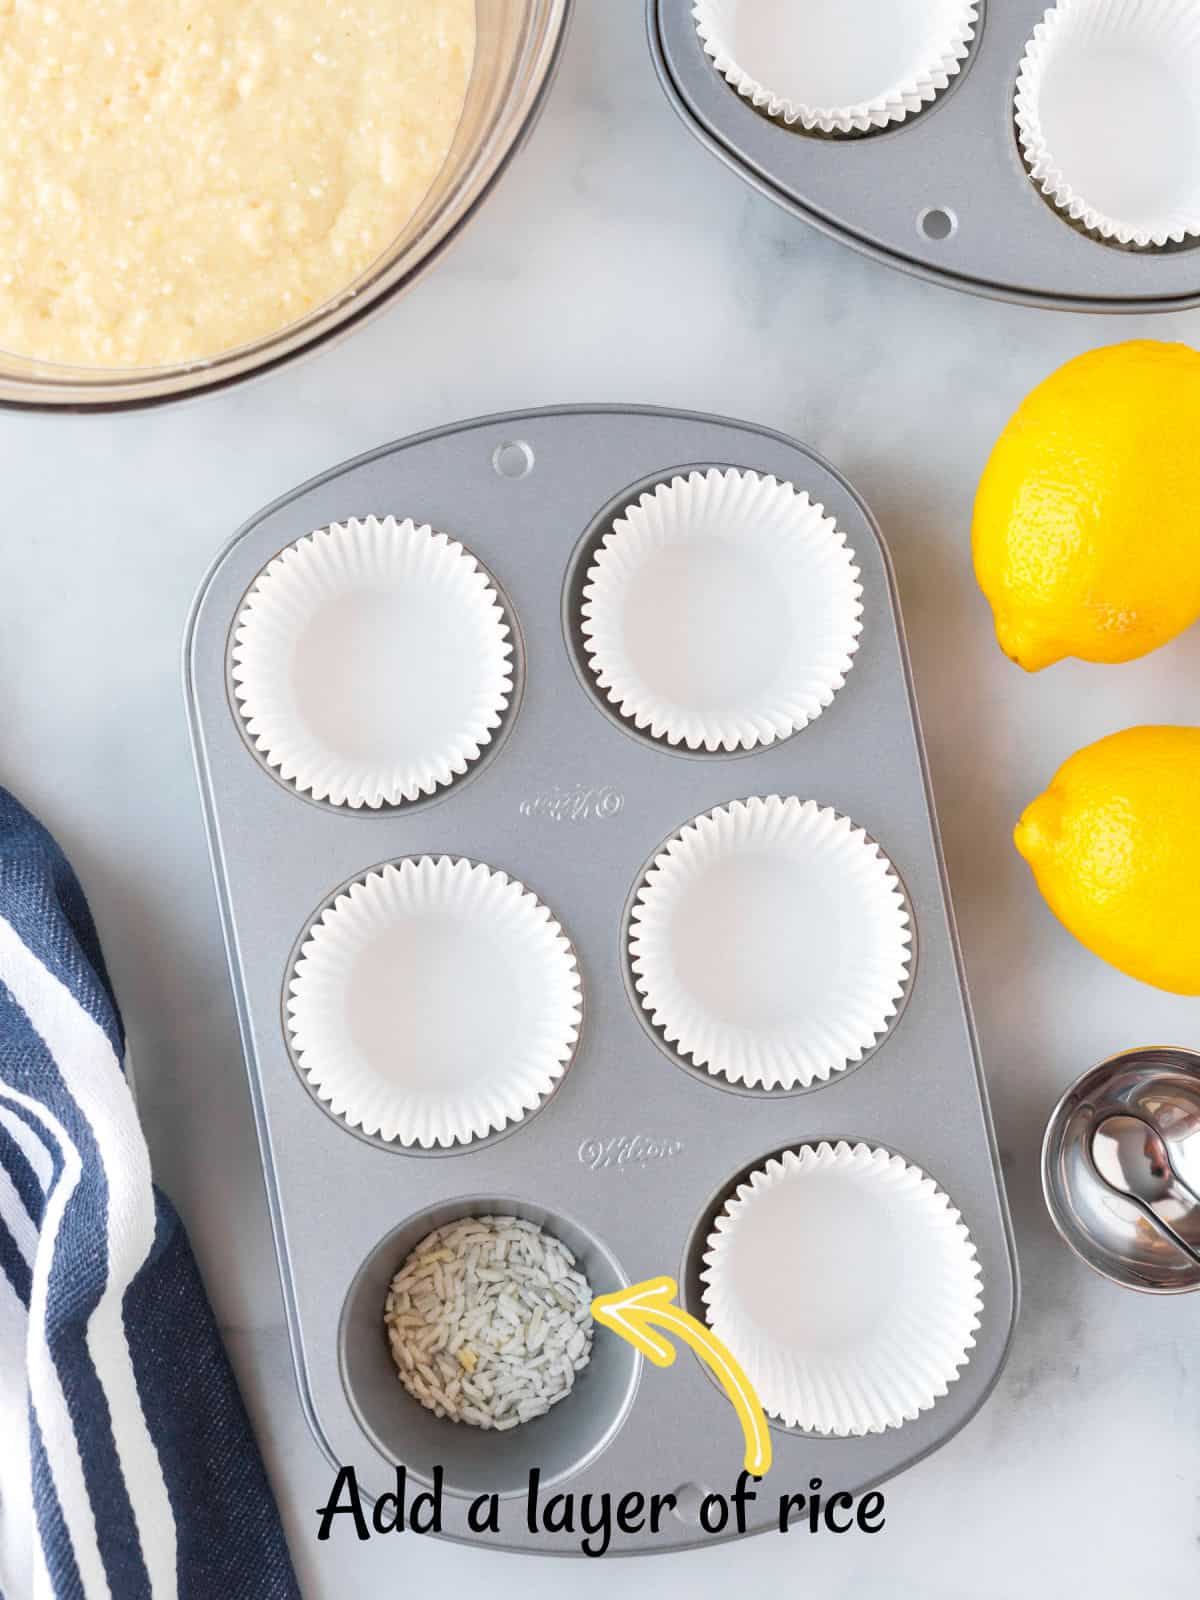 A paper-lined muffin tin with rice in one cup.